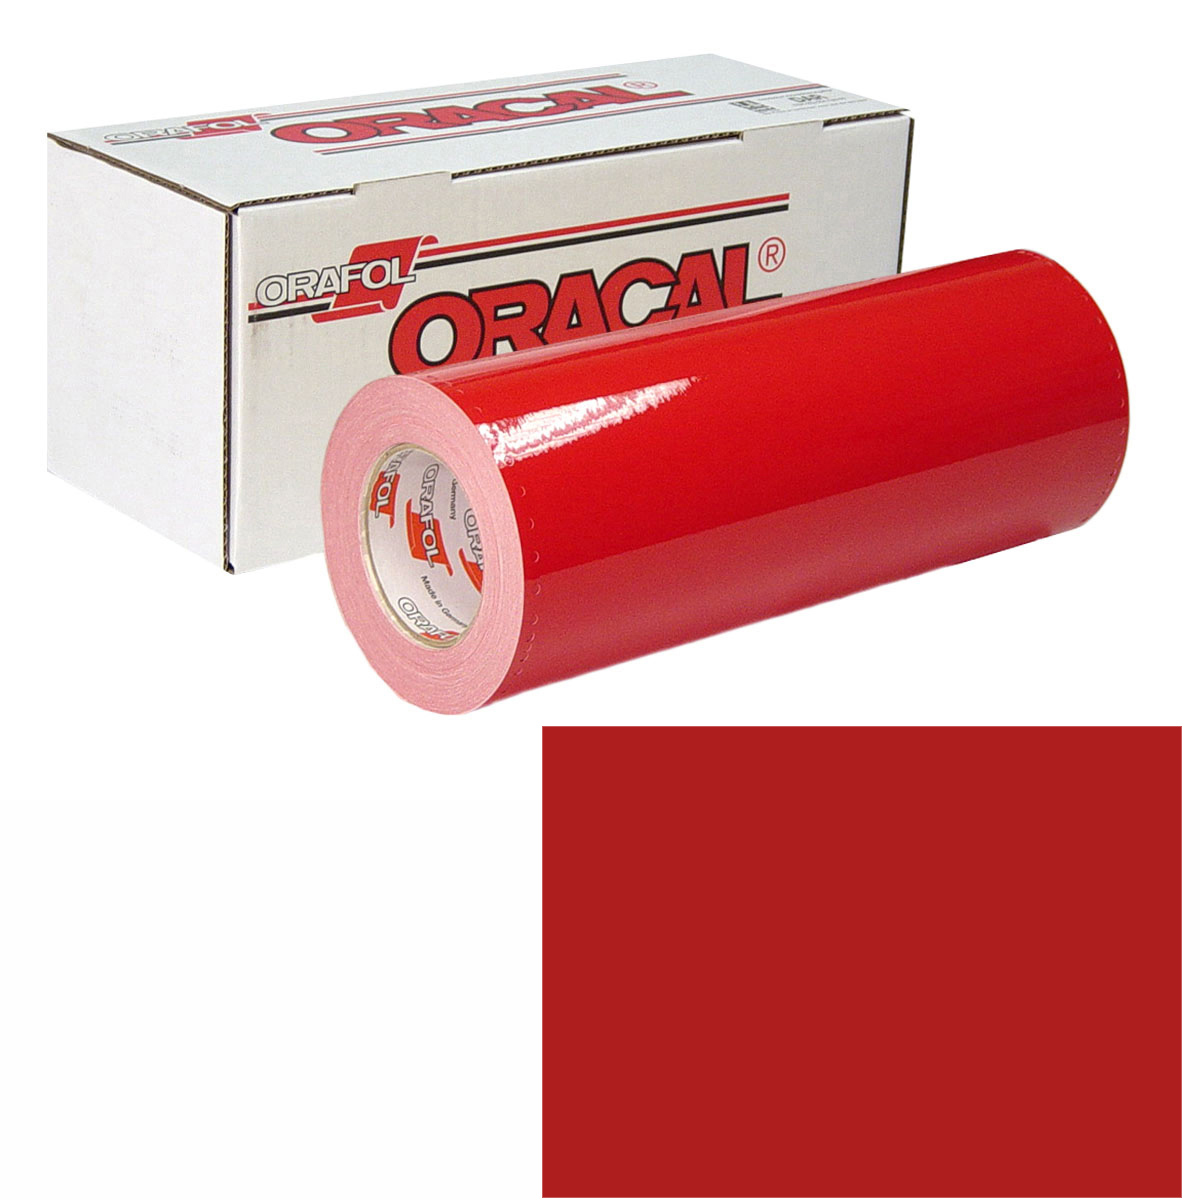 ORACAL 951 15in X 10yd 031 Red